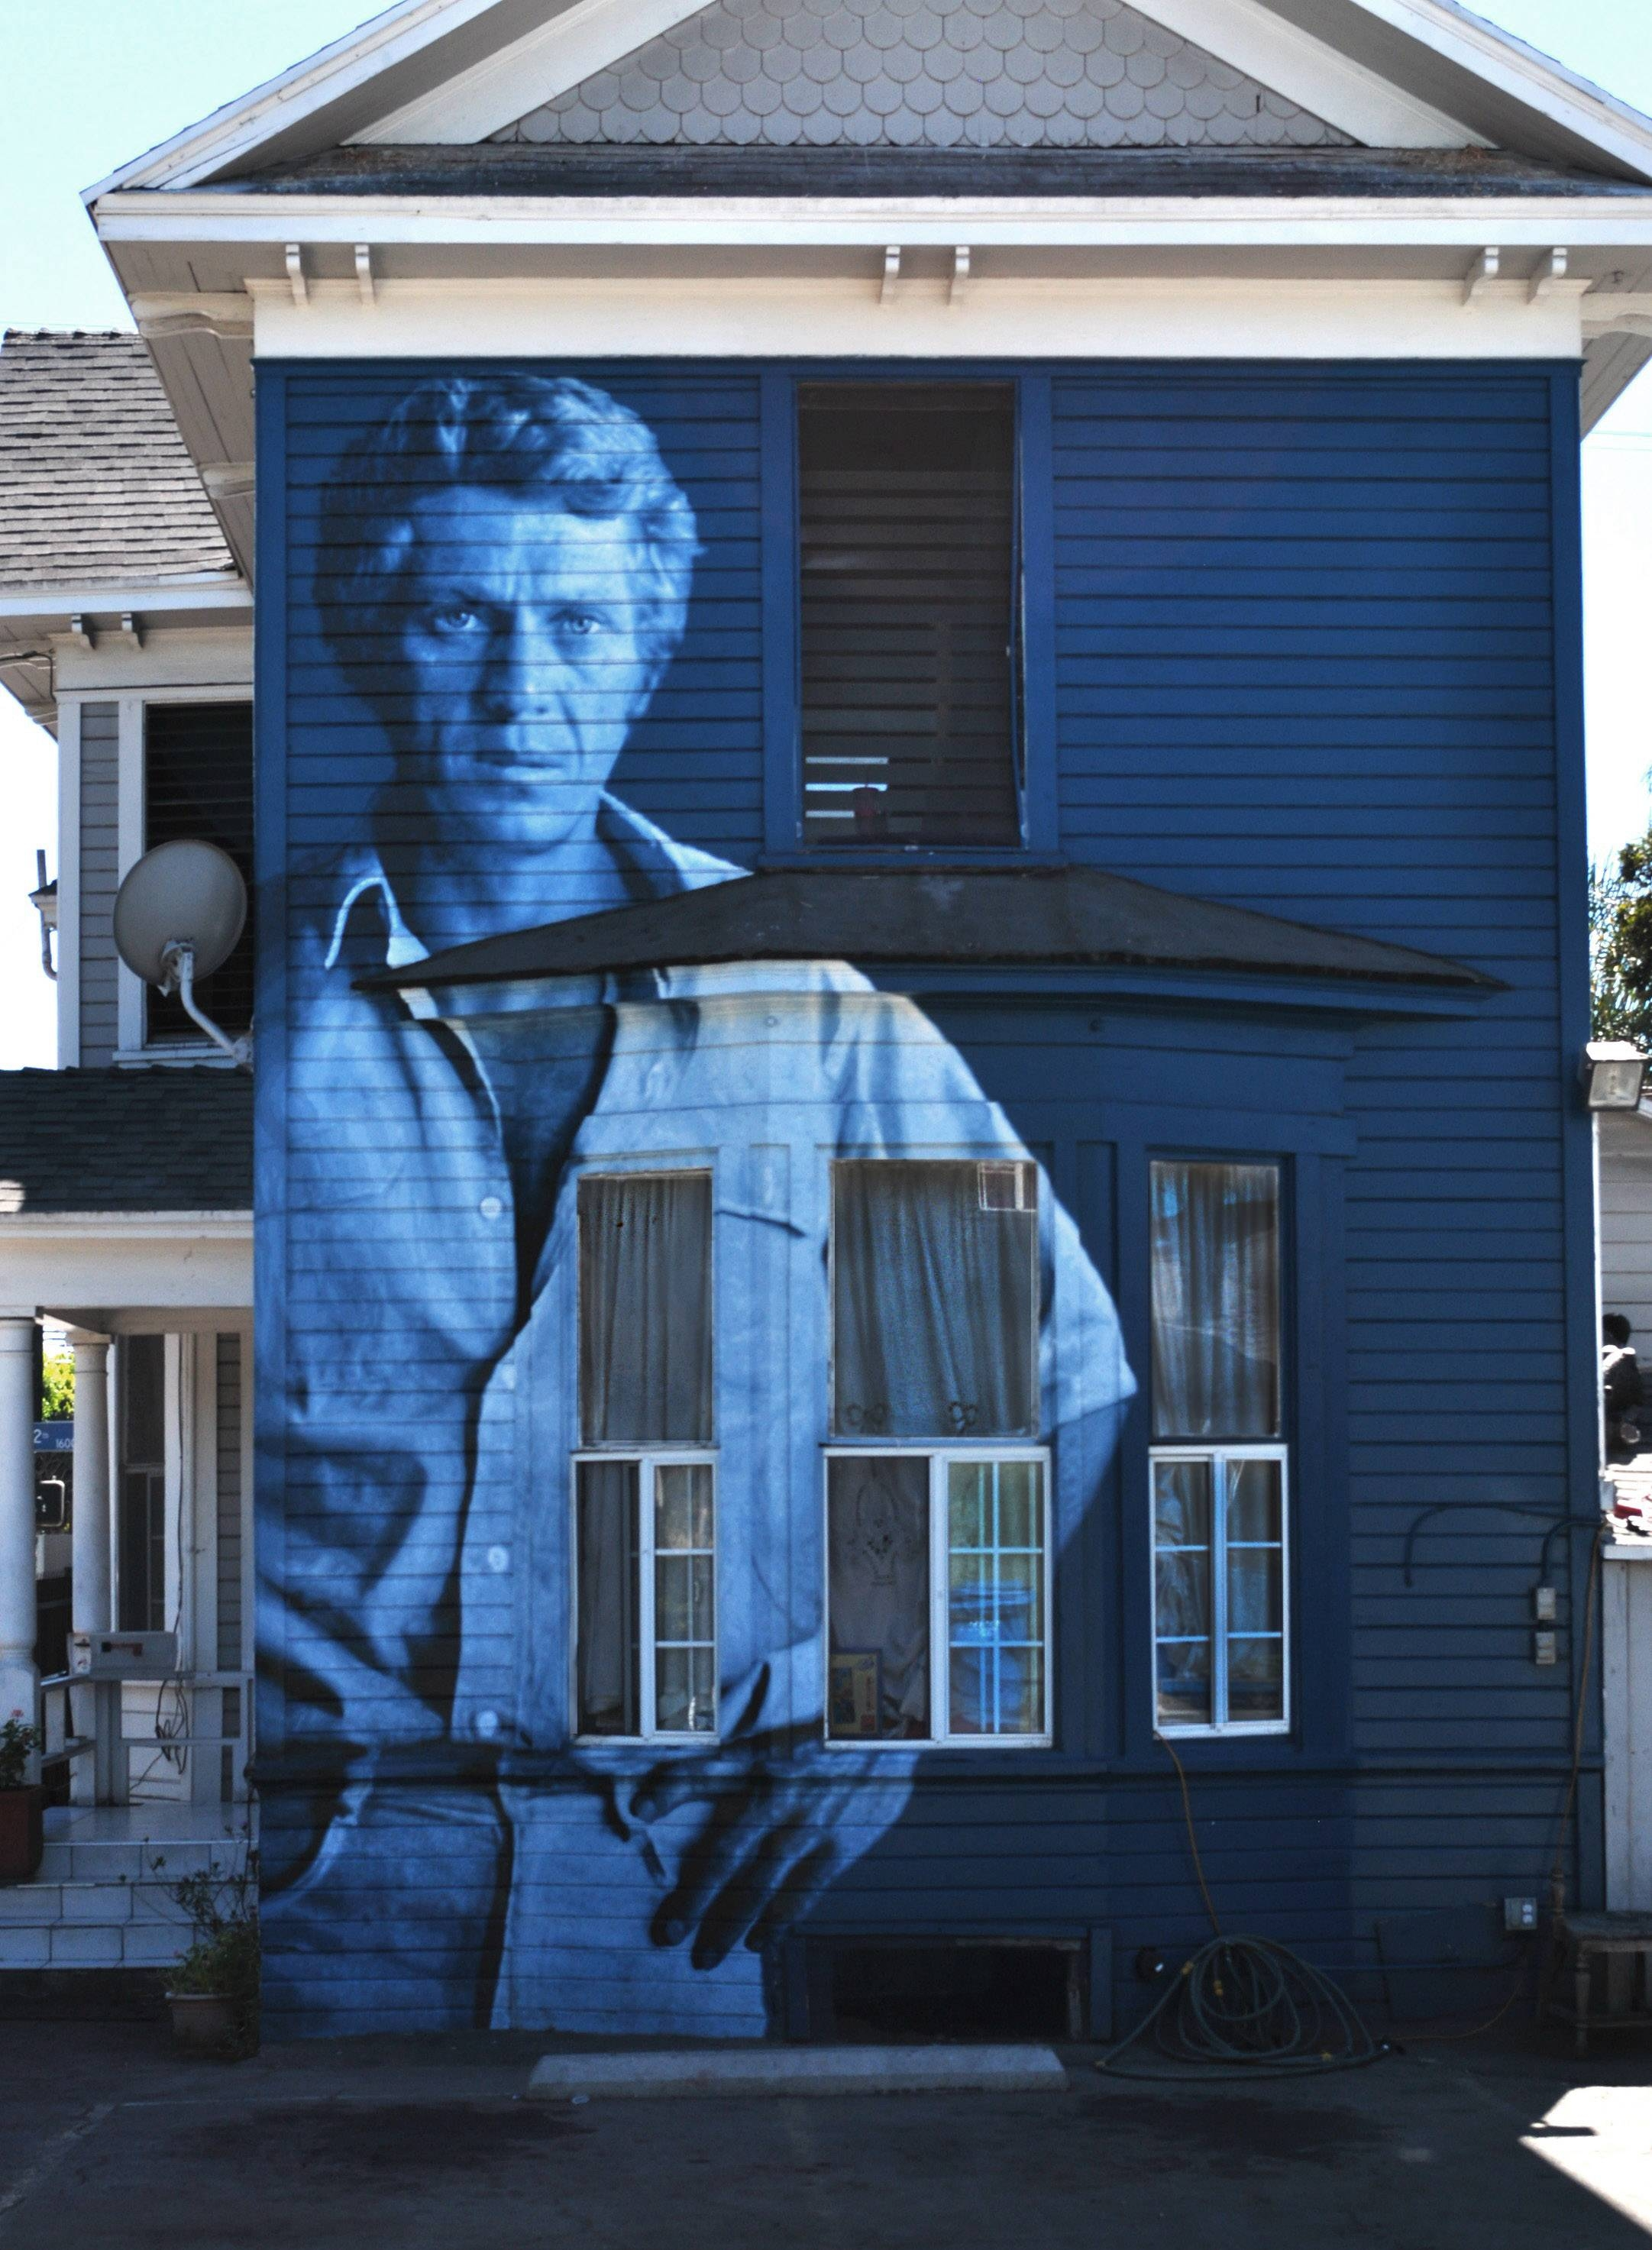 Kent Twitchell | The Other Art Talk | Intended For Best And Newest Steve Mcqueen Wall Art (View 4 of 20)